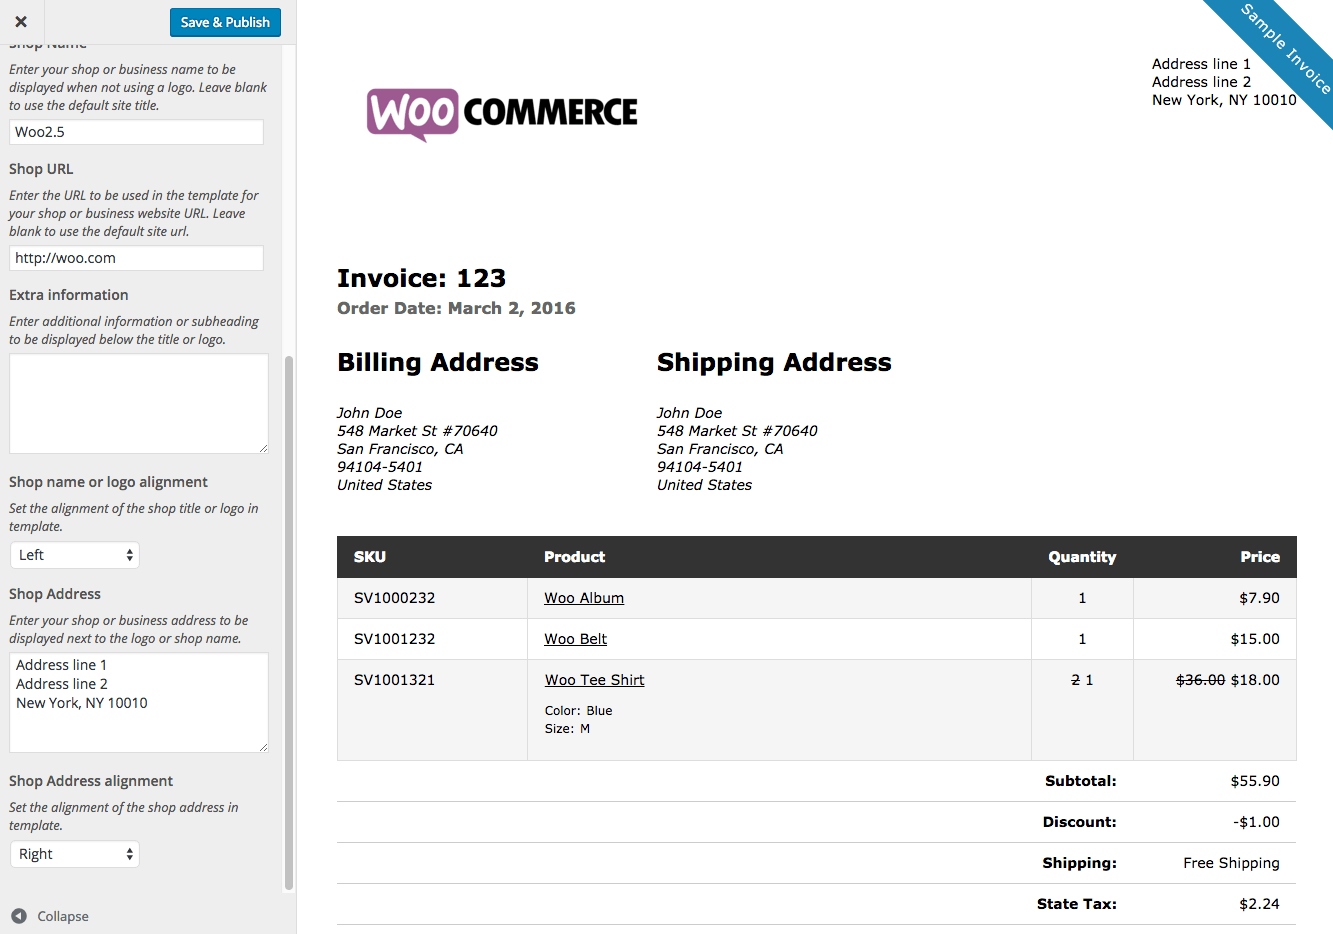 Angkajituus  Stunning Woocommerce Print Invoices Amp Packing Lists  Woocommerce Docs With Excellent Woocommerce Print Invoices  Packing Lists Customizer With Divine Receipt Books For Sale Also How To Make Receipts Online In Addition How To Make A Receipt For Services And Goodwill Donation Receipt For Taxes As Well As Print Out Receipt Additionally Receipt Of Payment Sample From Docswoocommercecom With Angkajituus  Excellent Woocommerce Print Invoices Amp Packing Lists  Woocommerce Docs With Divine Woocommerce Print Invoices  Packing Lists Customizer And Stunning Receipt Books For Sale Also How To Make Receipts Online In Addition How To Make A Receipt For Services From Docswoocommercecom